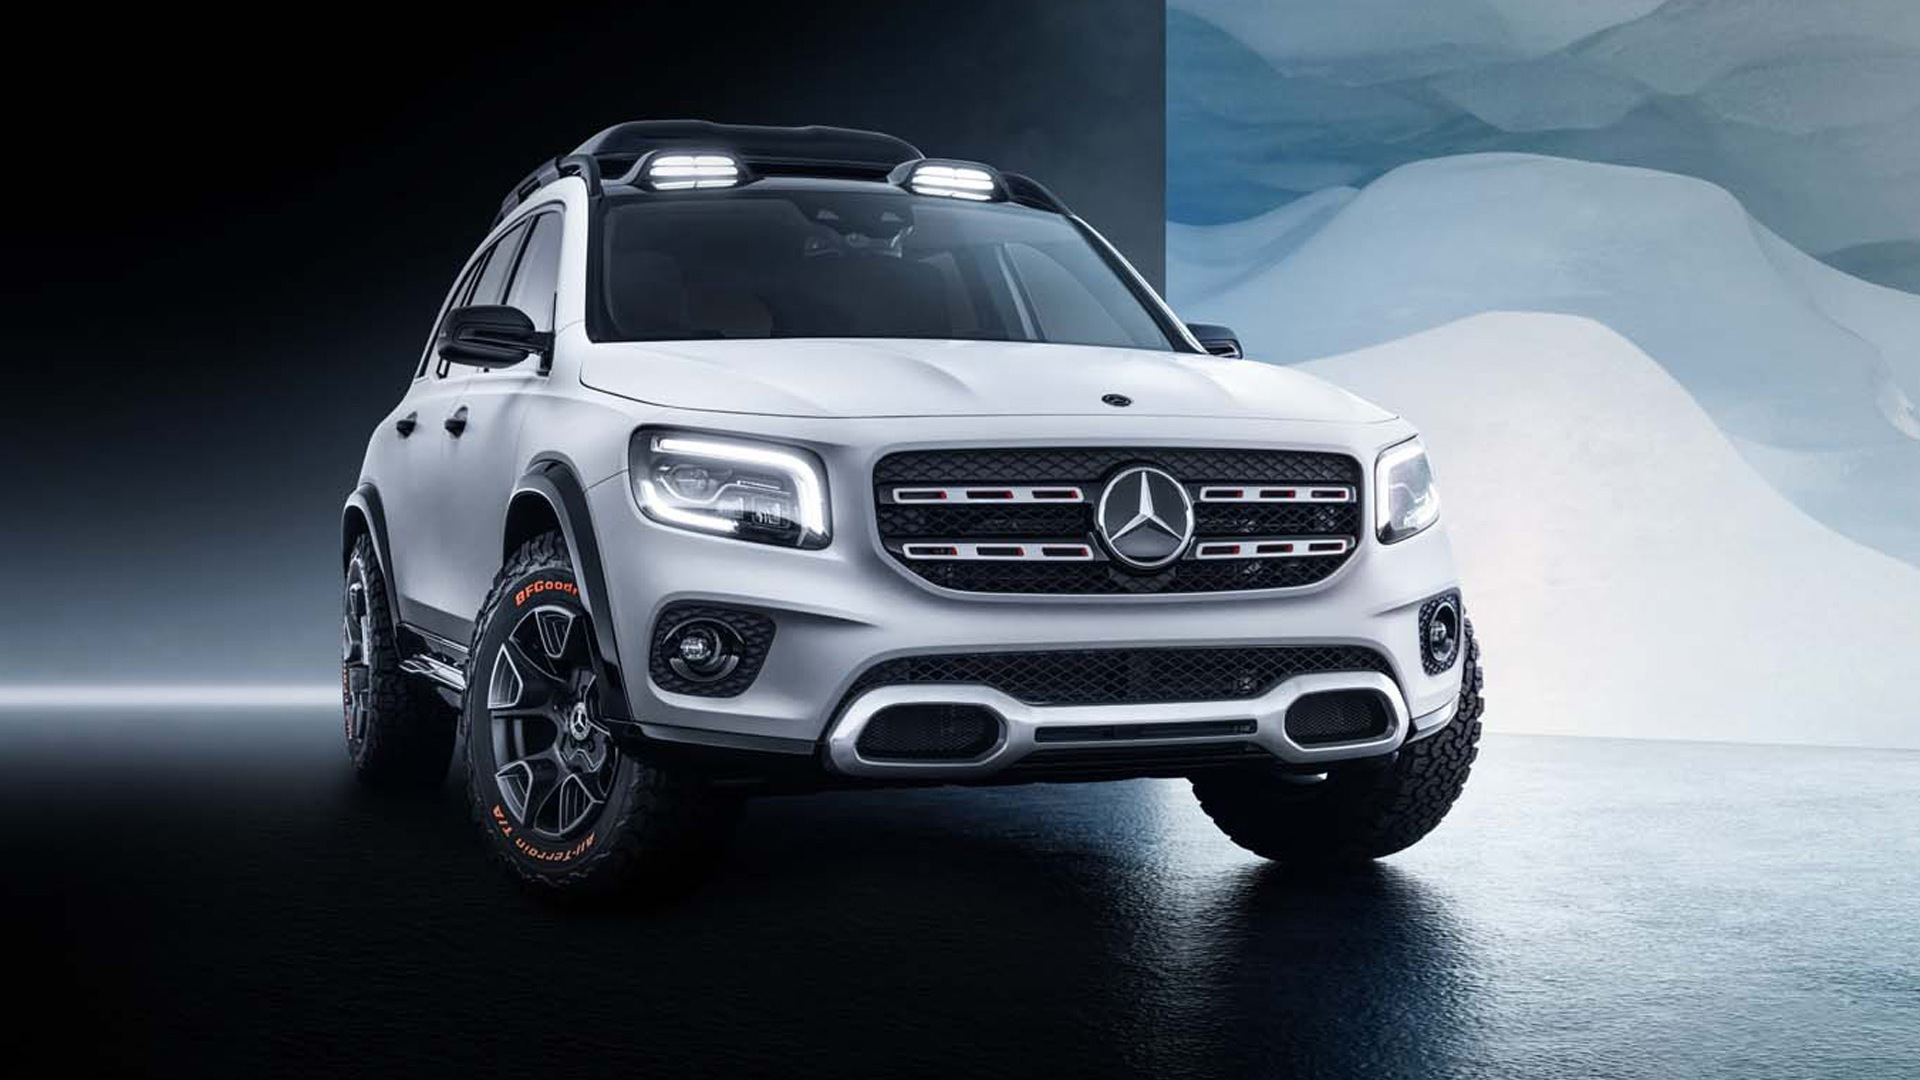 GLB concept previews a more rugged Mercedes compact SUV 1920x1080